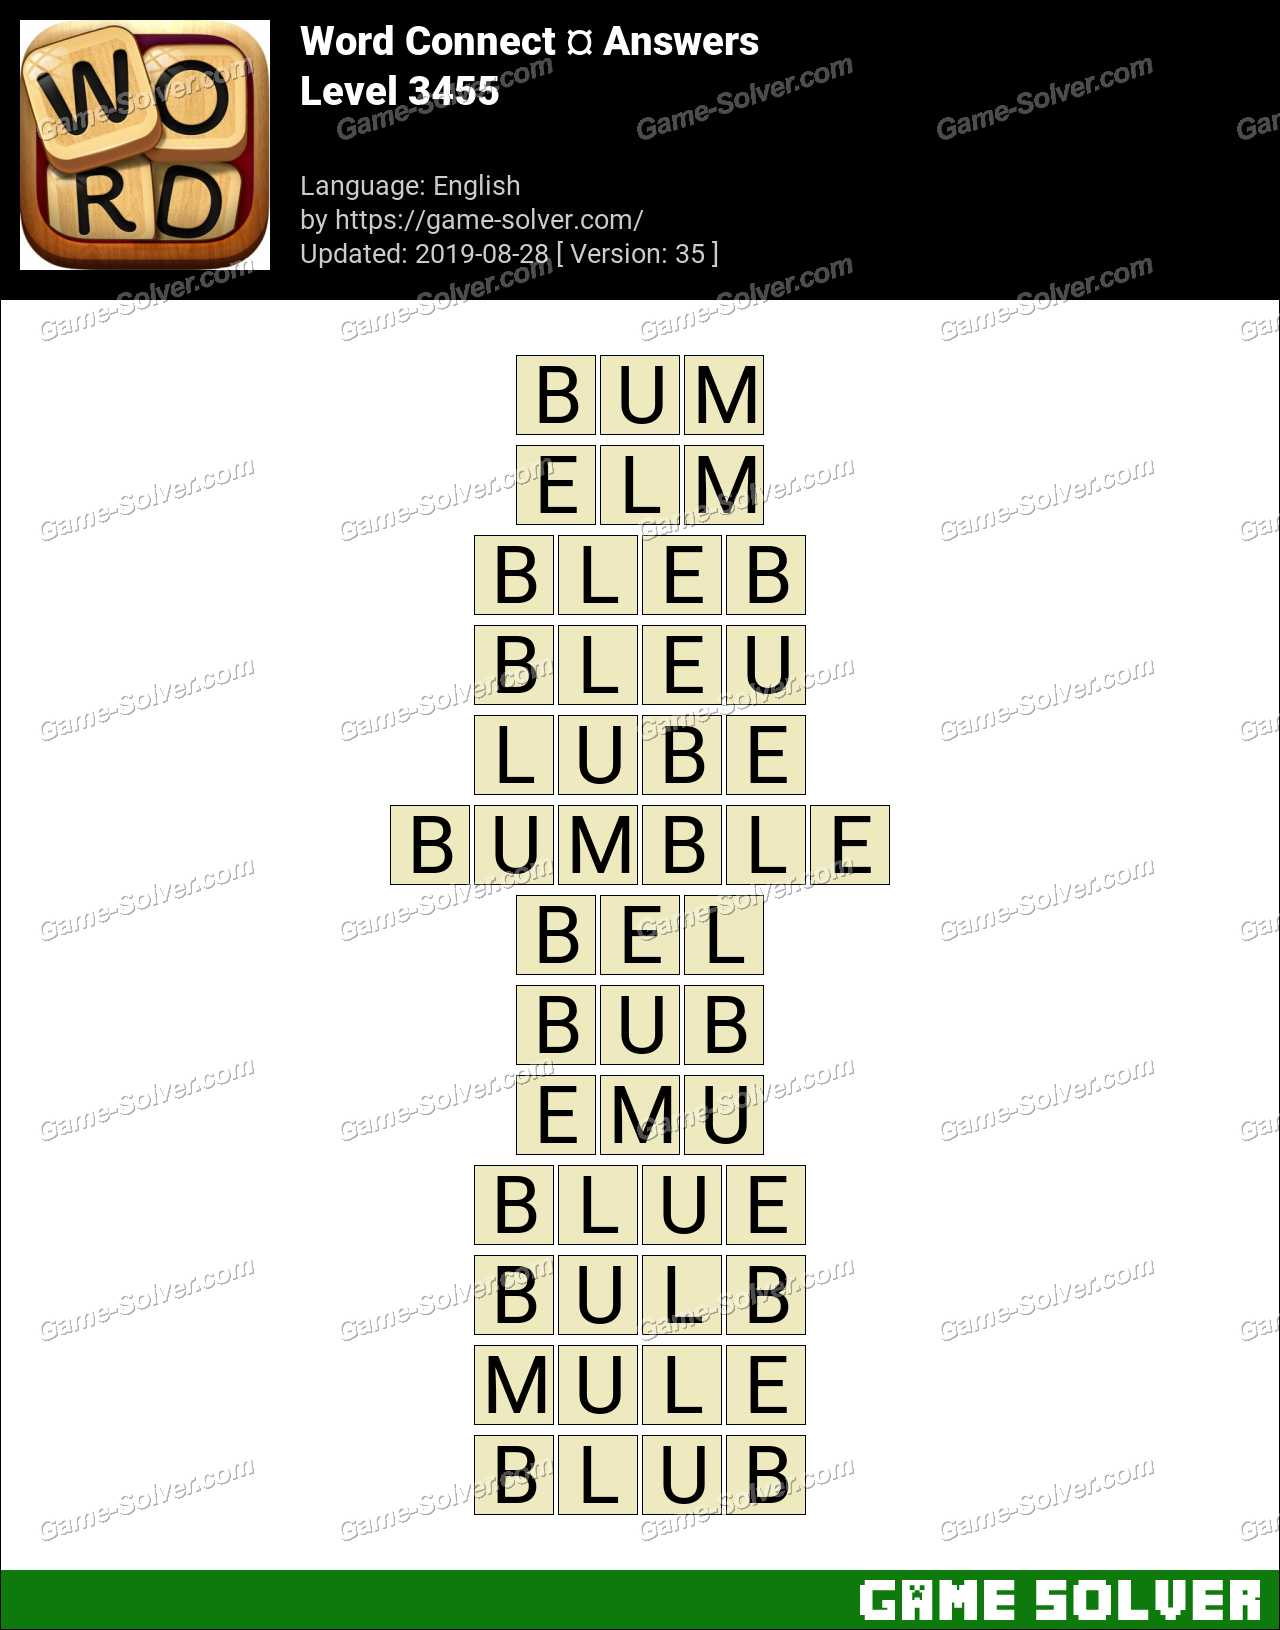 Word Connect Level 3455 Answers